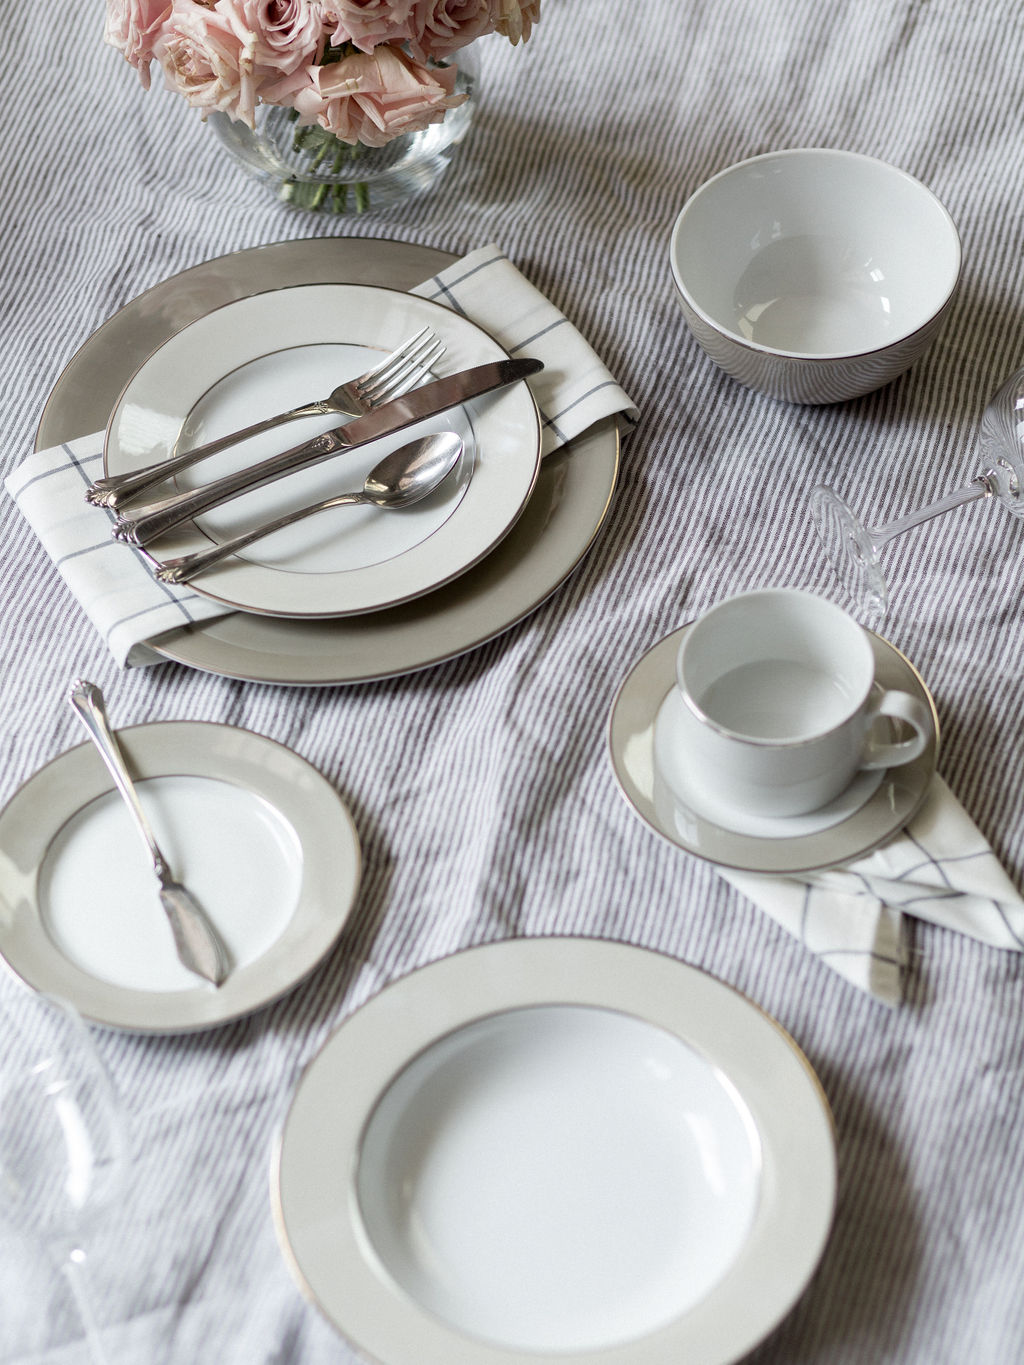 Clockwise: Dinner and Salad Plates with Dinner Fork, Knife, and Spoon; Cereal Bowl (optional); red wine glass; Coffee Cup and Saucer; Salad Bowl; White Wine Glass; Bread Plate with Butter Knife   *Dessert Plate, Water Glass, Salad Fork, Soup Spoon, and Teaspoon Not Shown